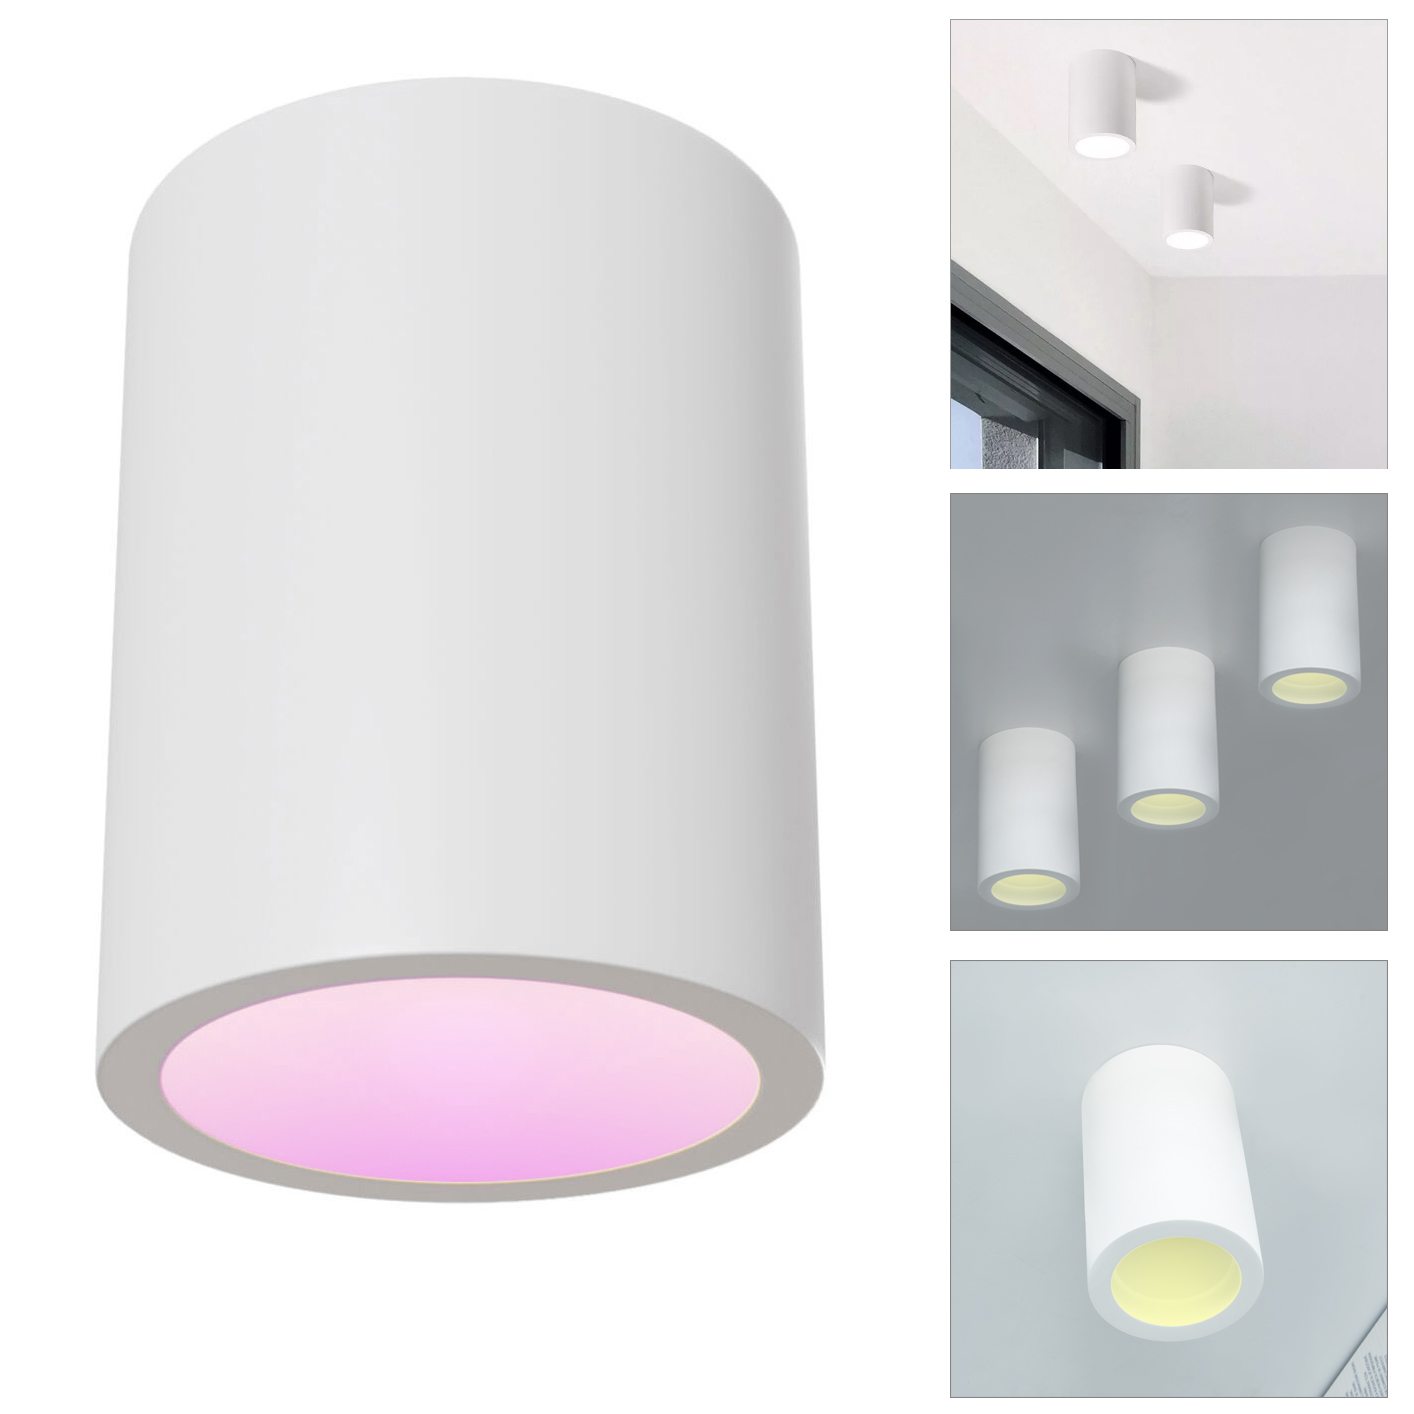 GU10 LED ceiling lamp plaster cylinder spotlight ceiling lights living room kitchen